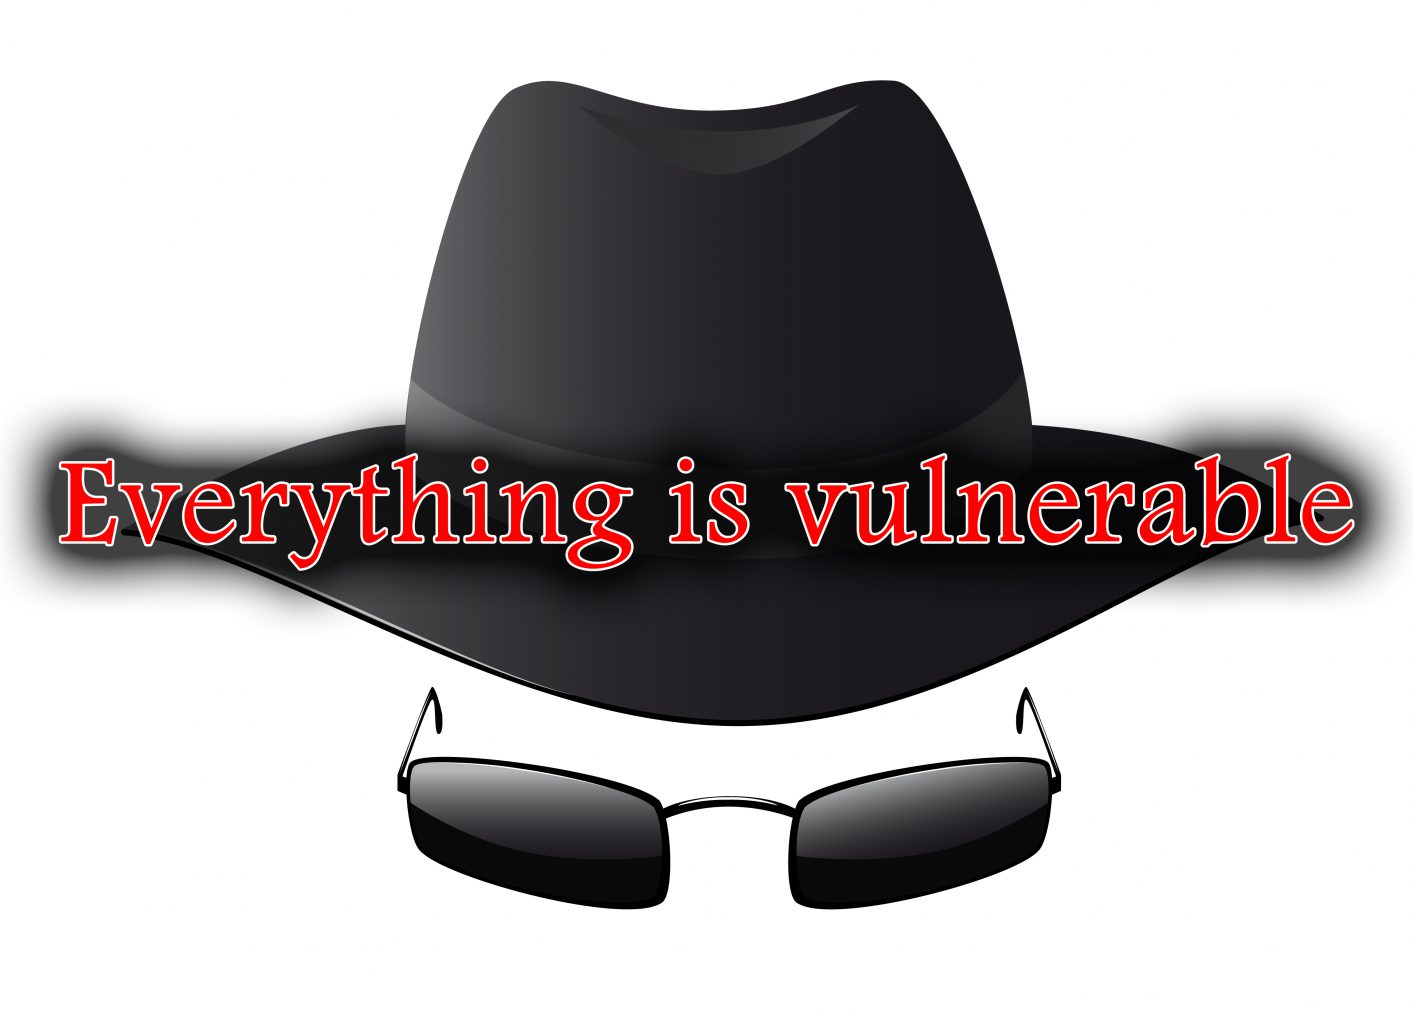 Everything is vulnerable I : What are Malwares, viruses, exploits, trojans, hacks and cracks ?